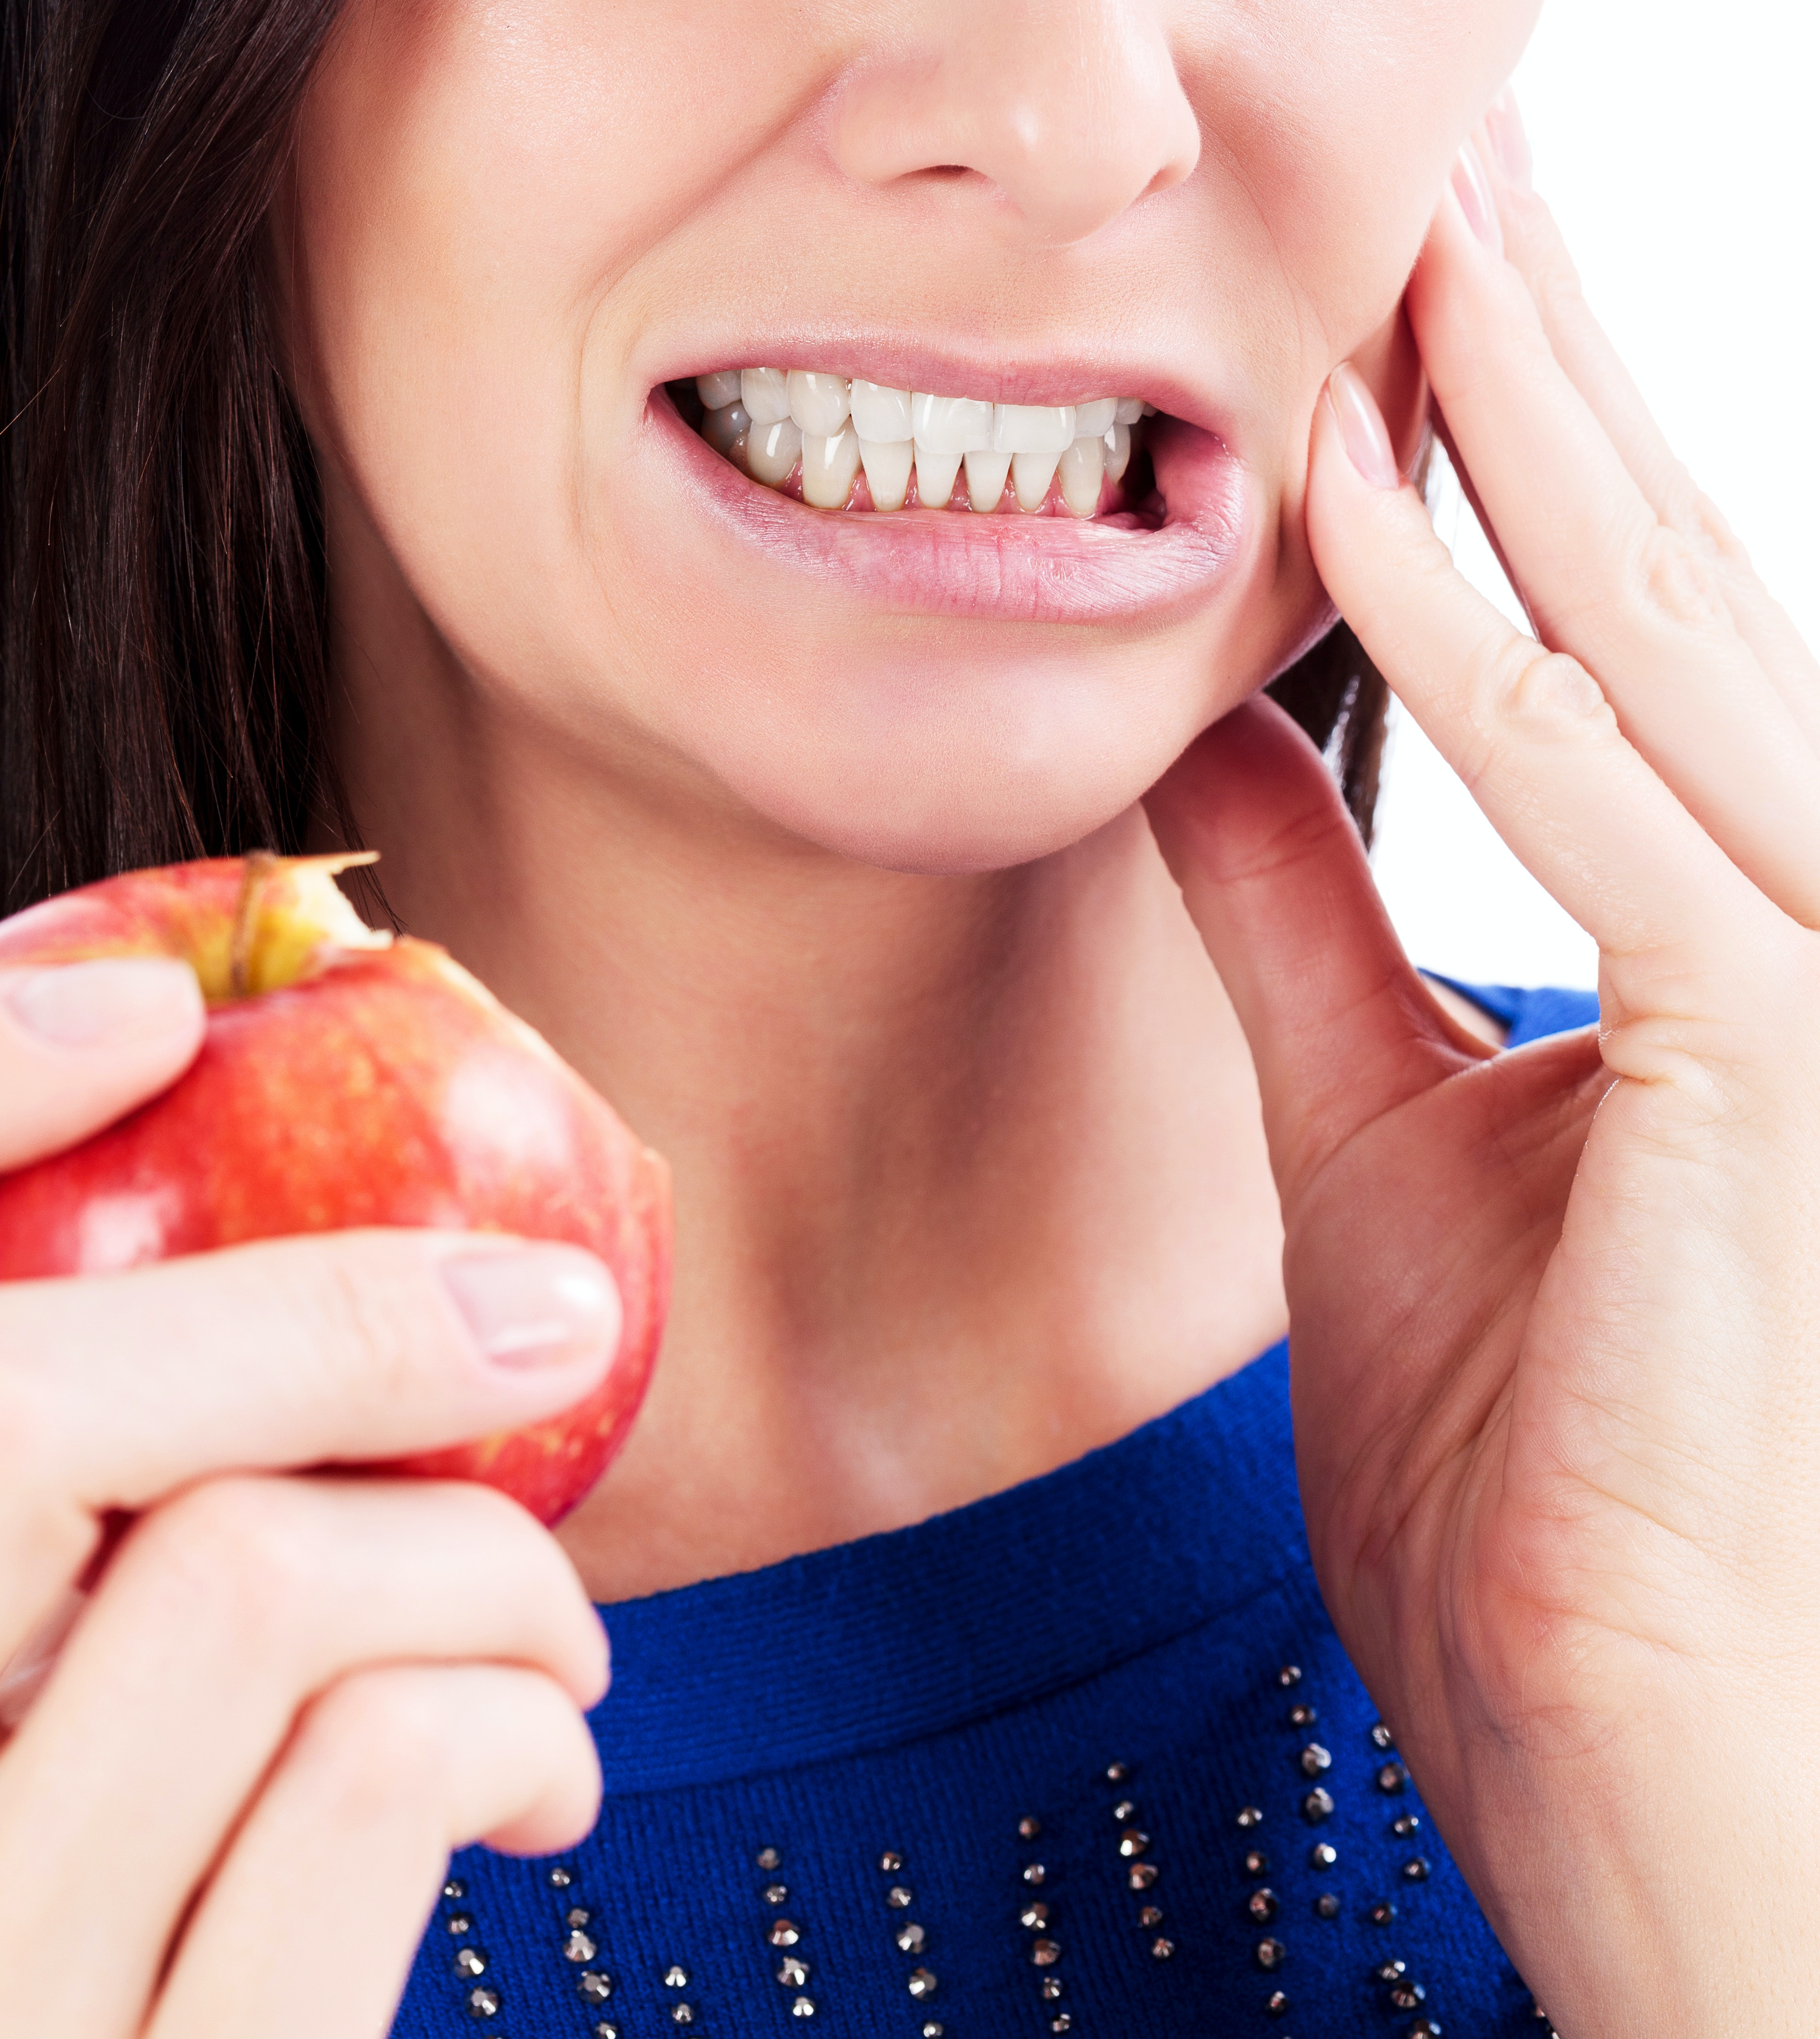 An image depicting a person suffering from tooth pain that makes chewing difficult symptoms